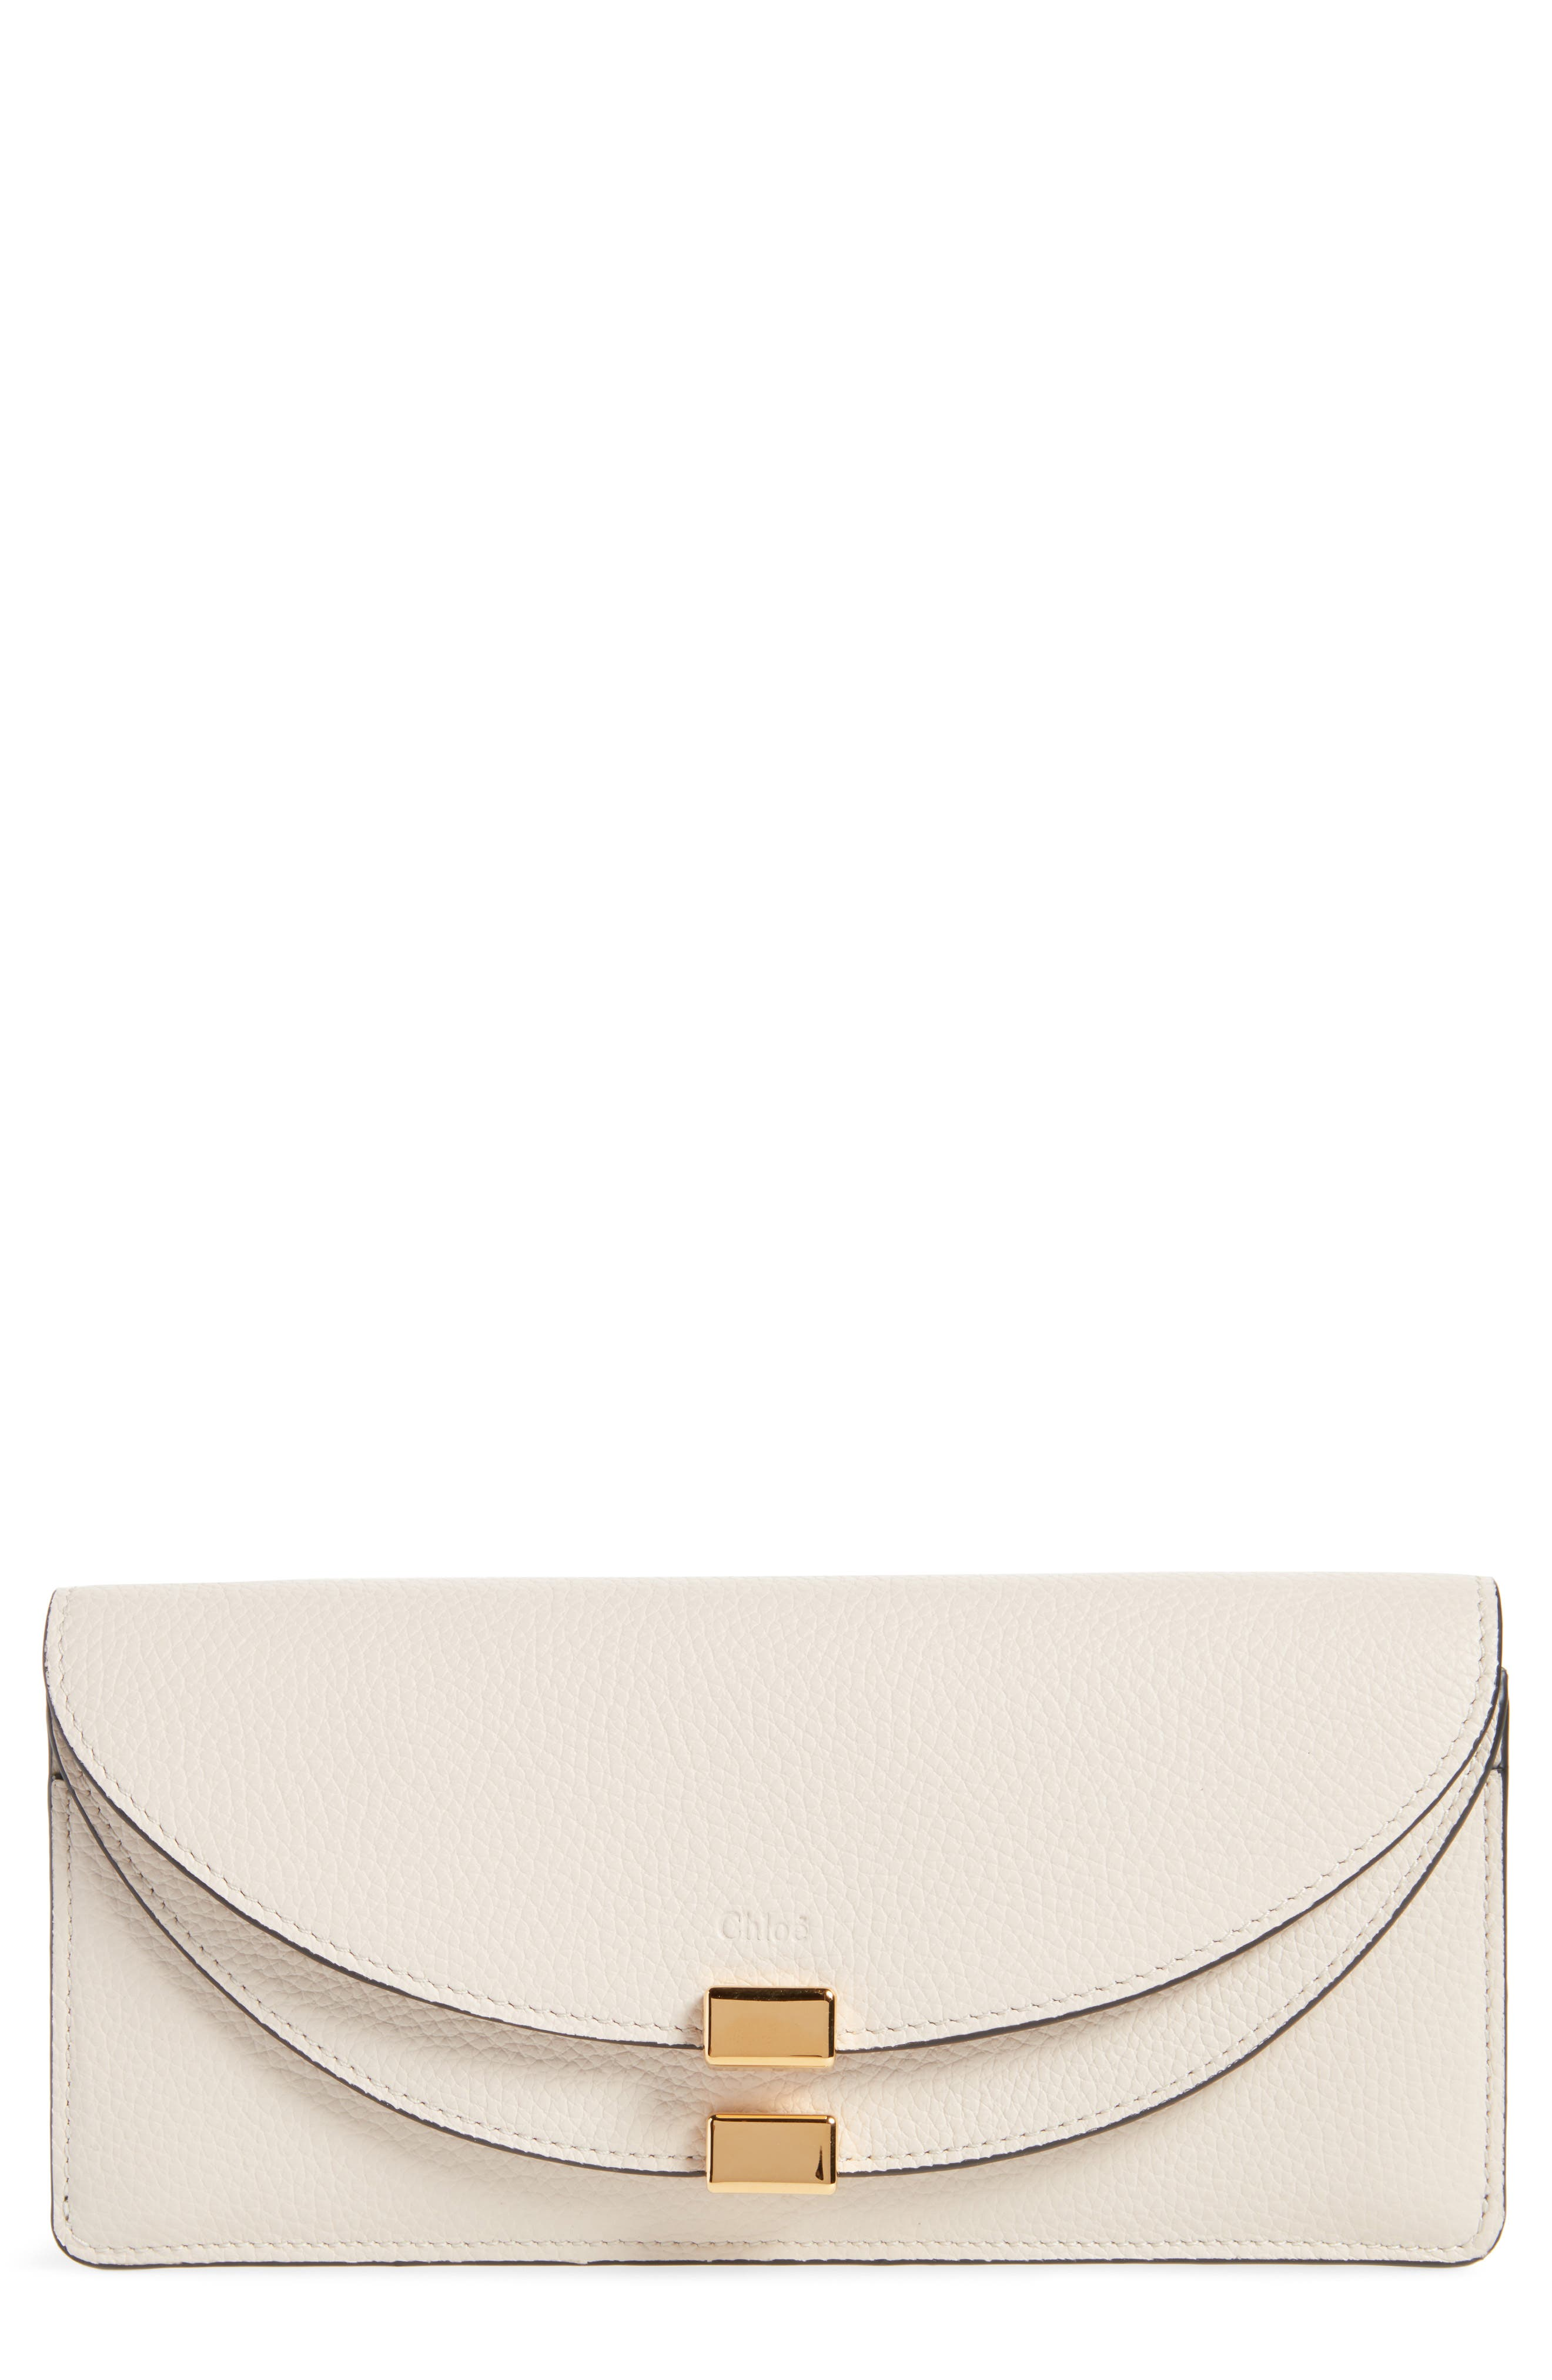 Georgia Continental Leather Wallet,                         Main,                         color, ABSTRACT WHITE